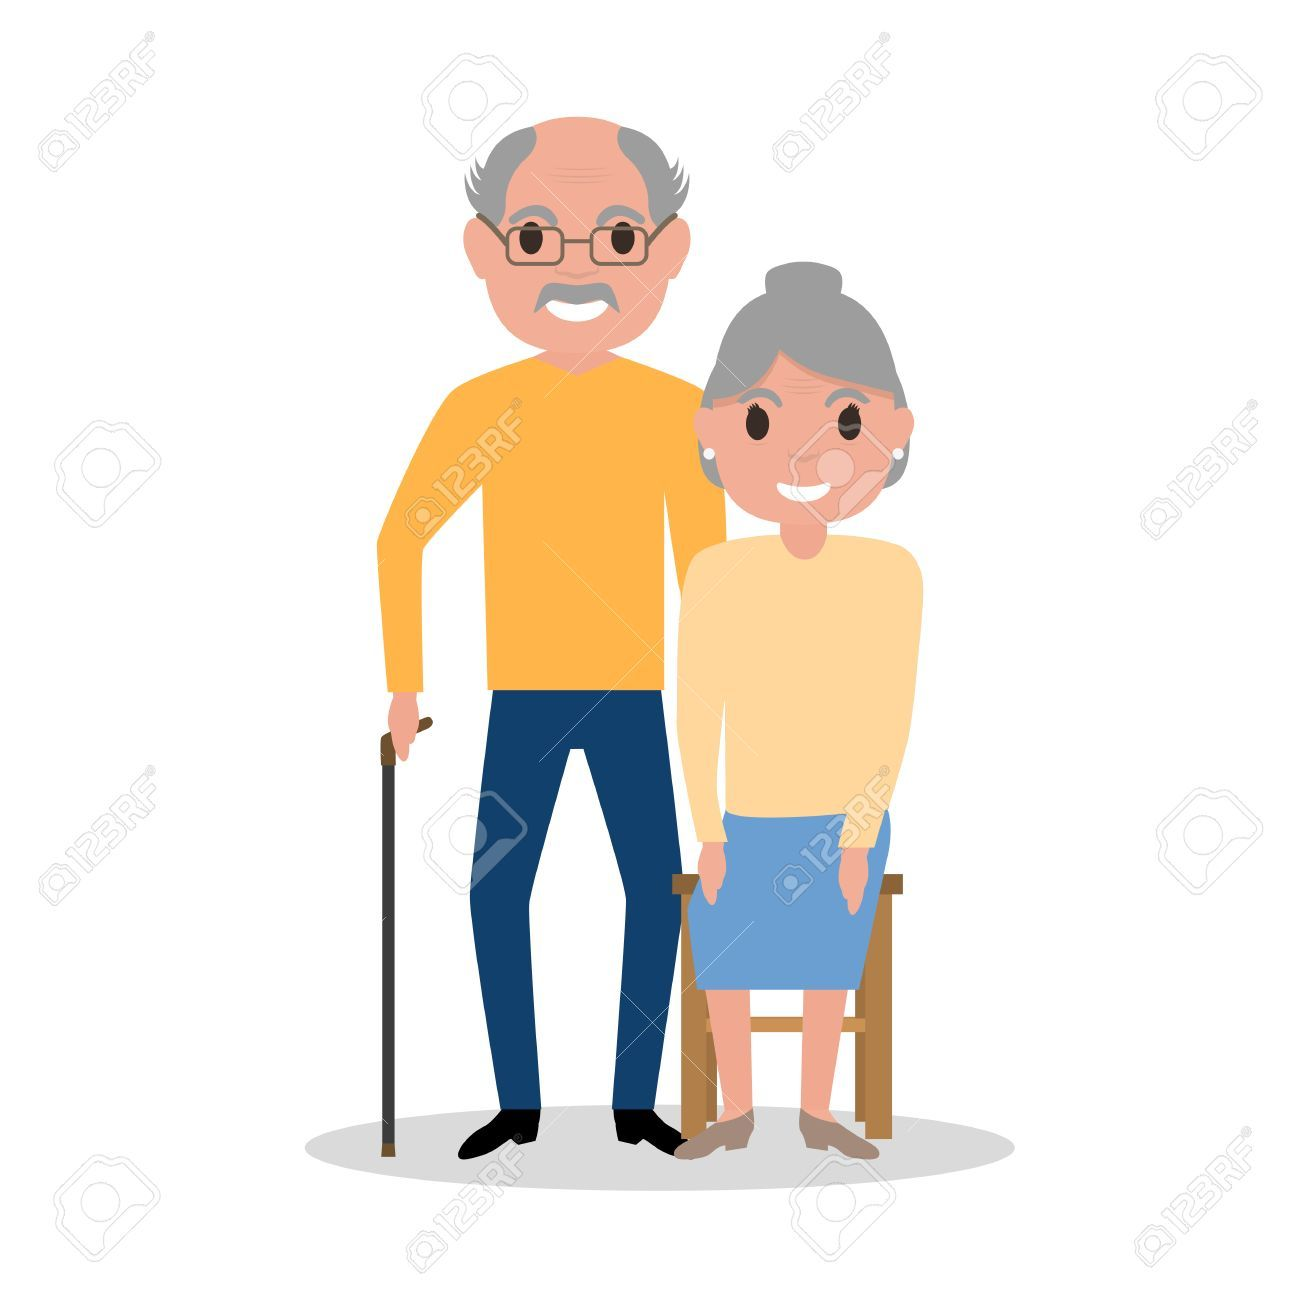 Clipart of different aged people clipart royalty free Vector elderly couple grandparents, aged people » Clipart Portal clipart royalty free